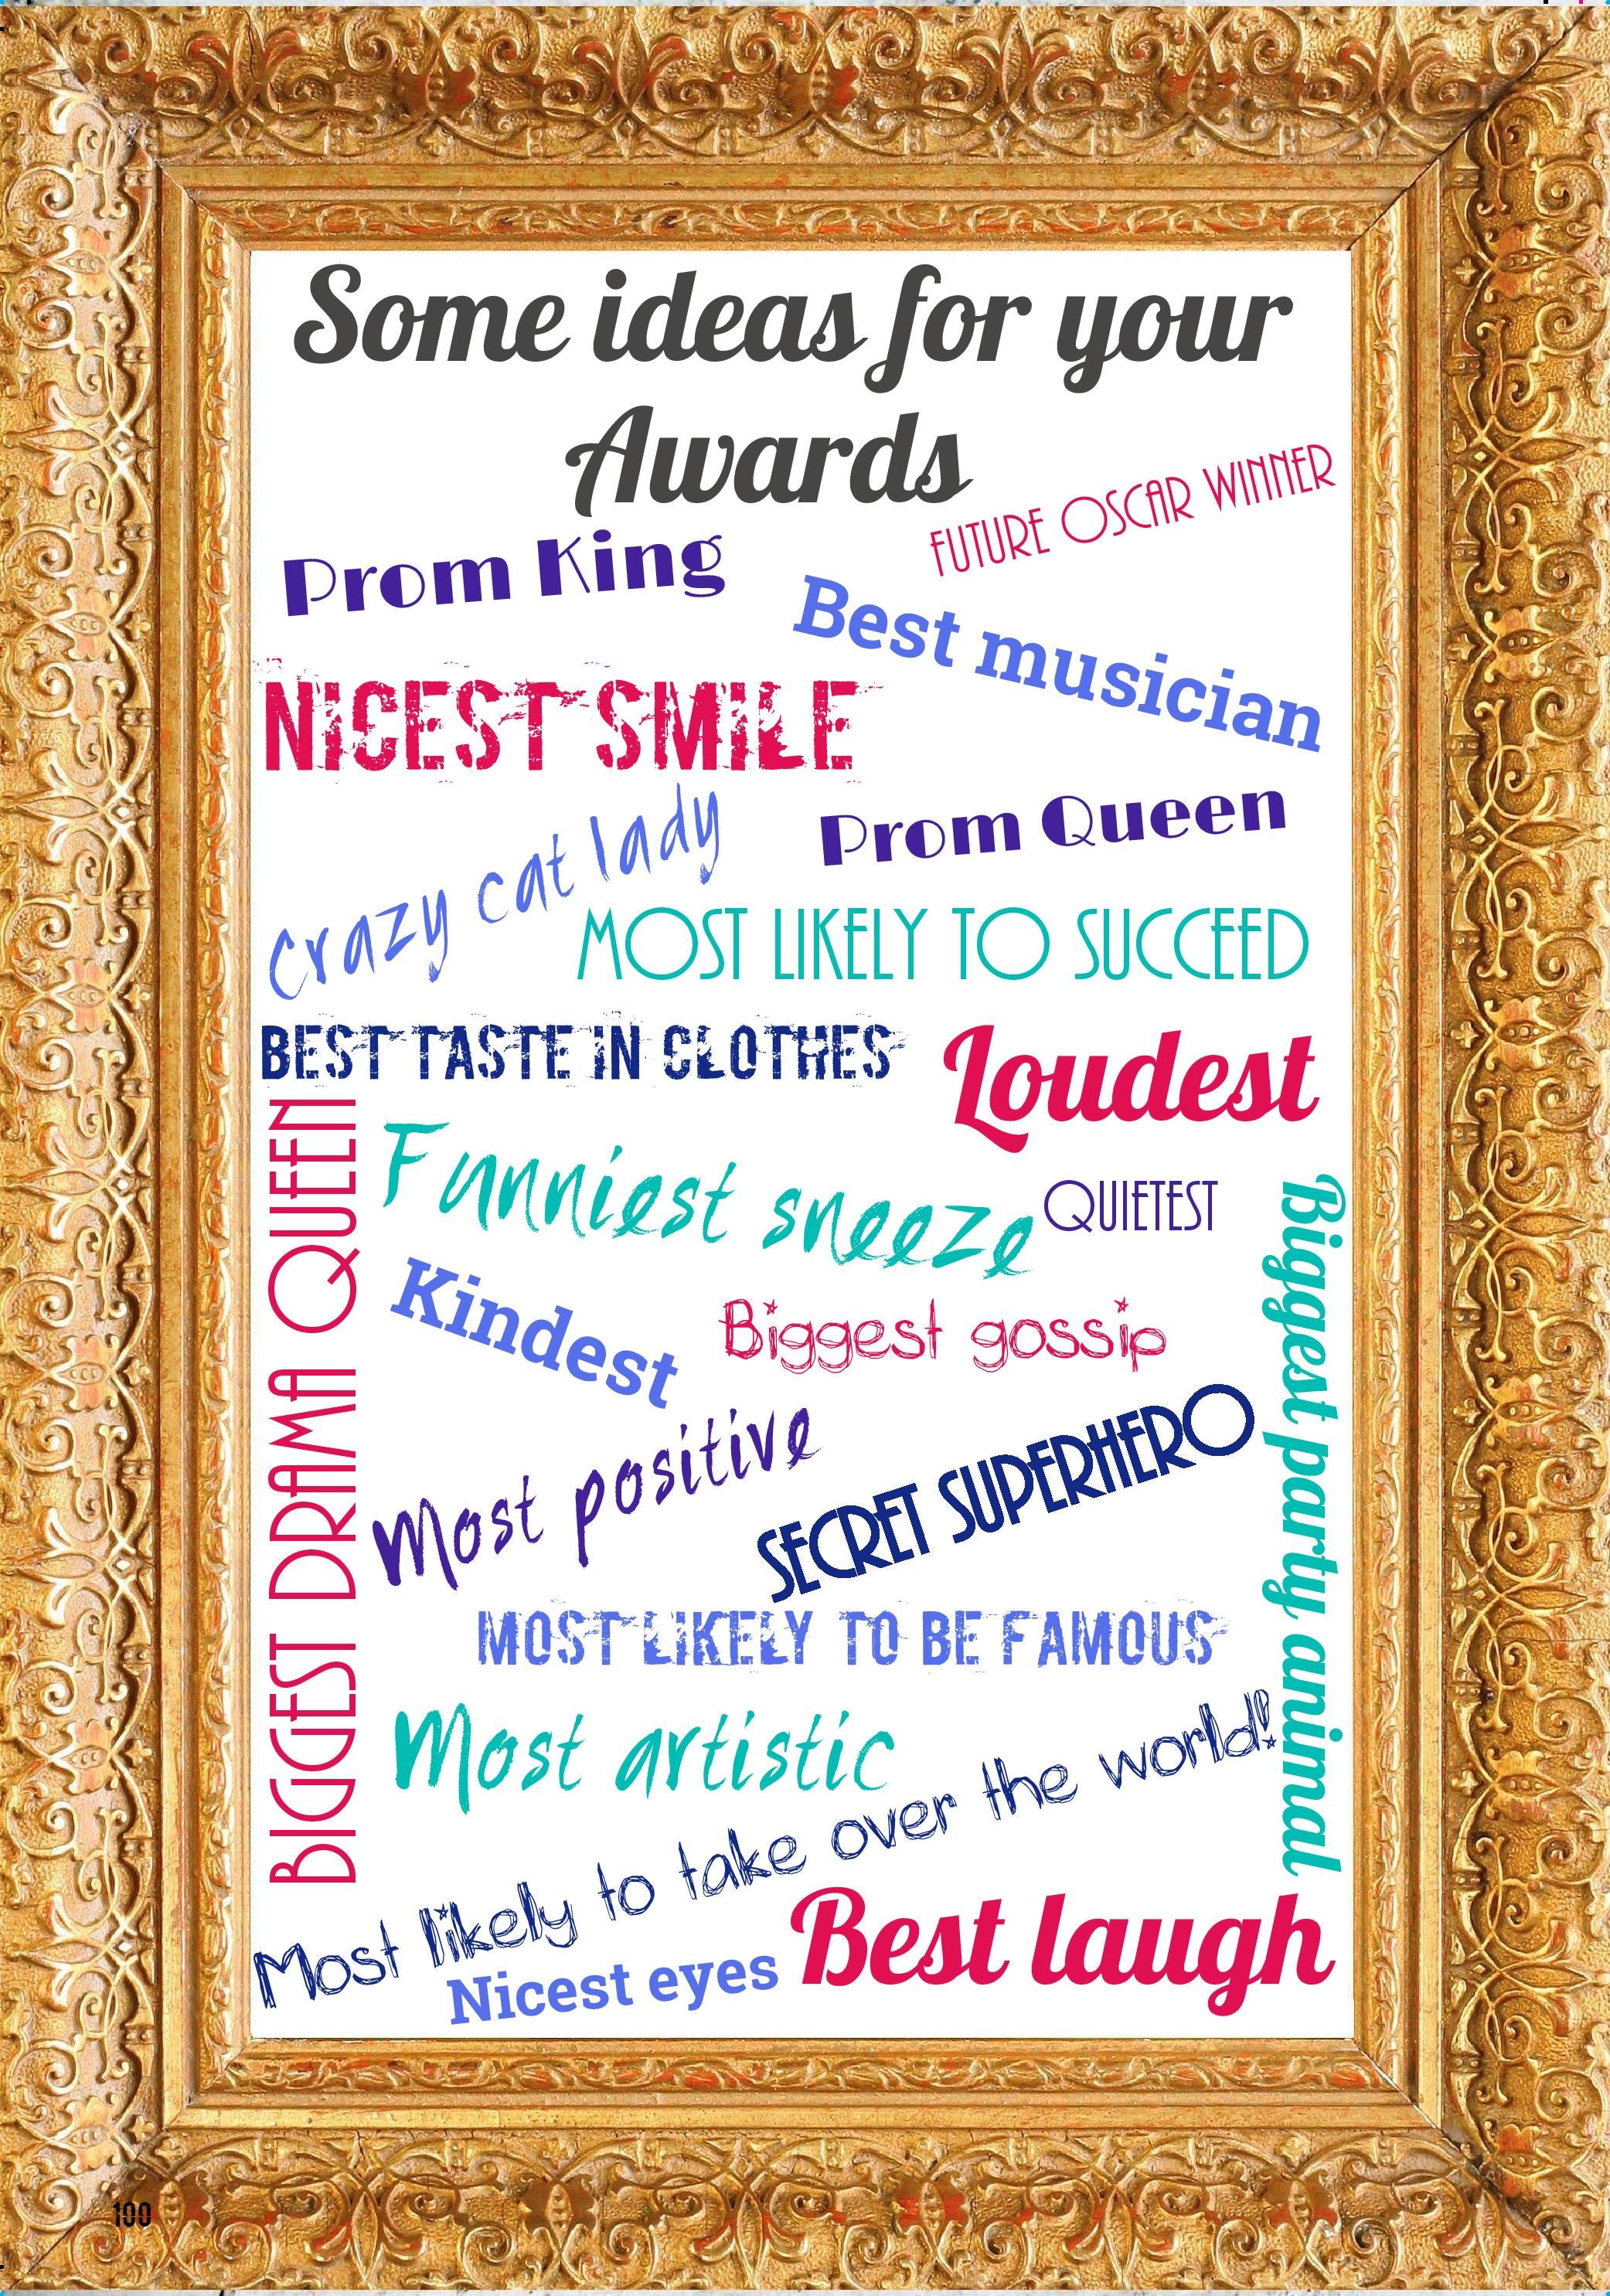 ideas for awards categories